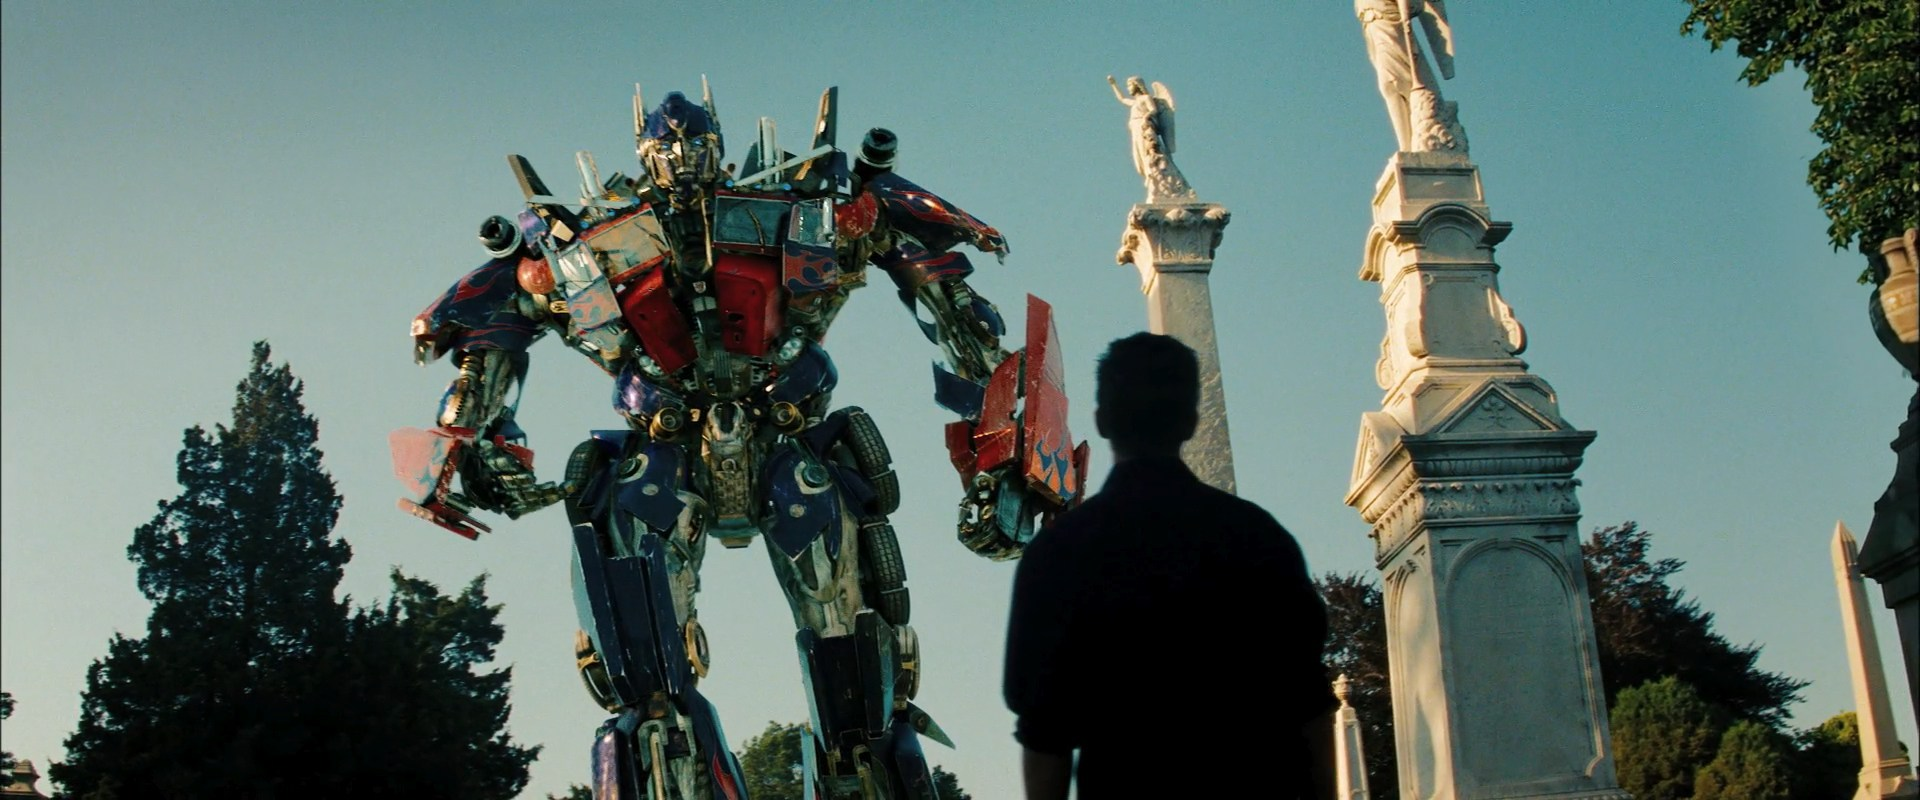 professional-editing-online-transformers